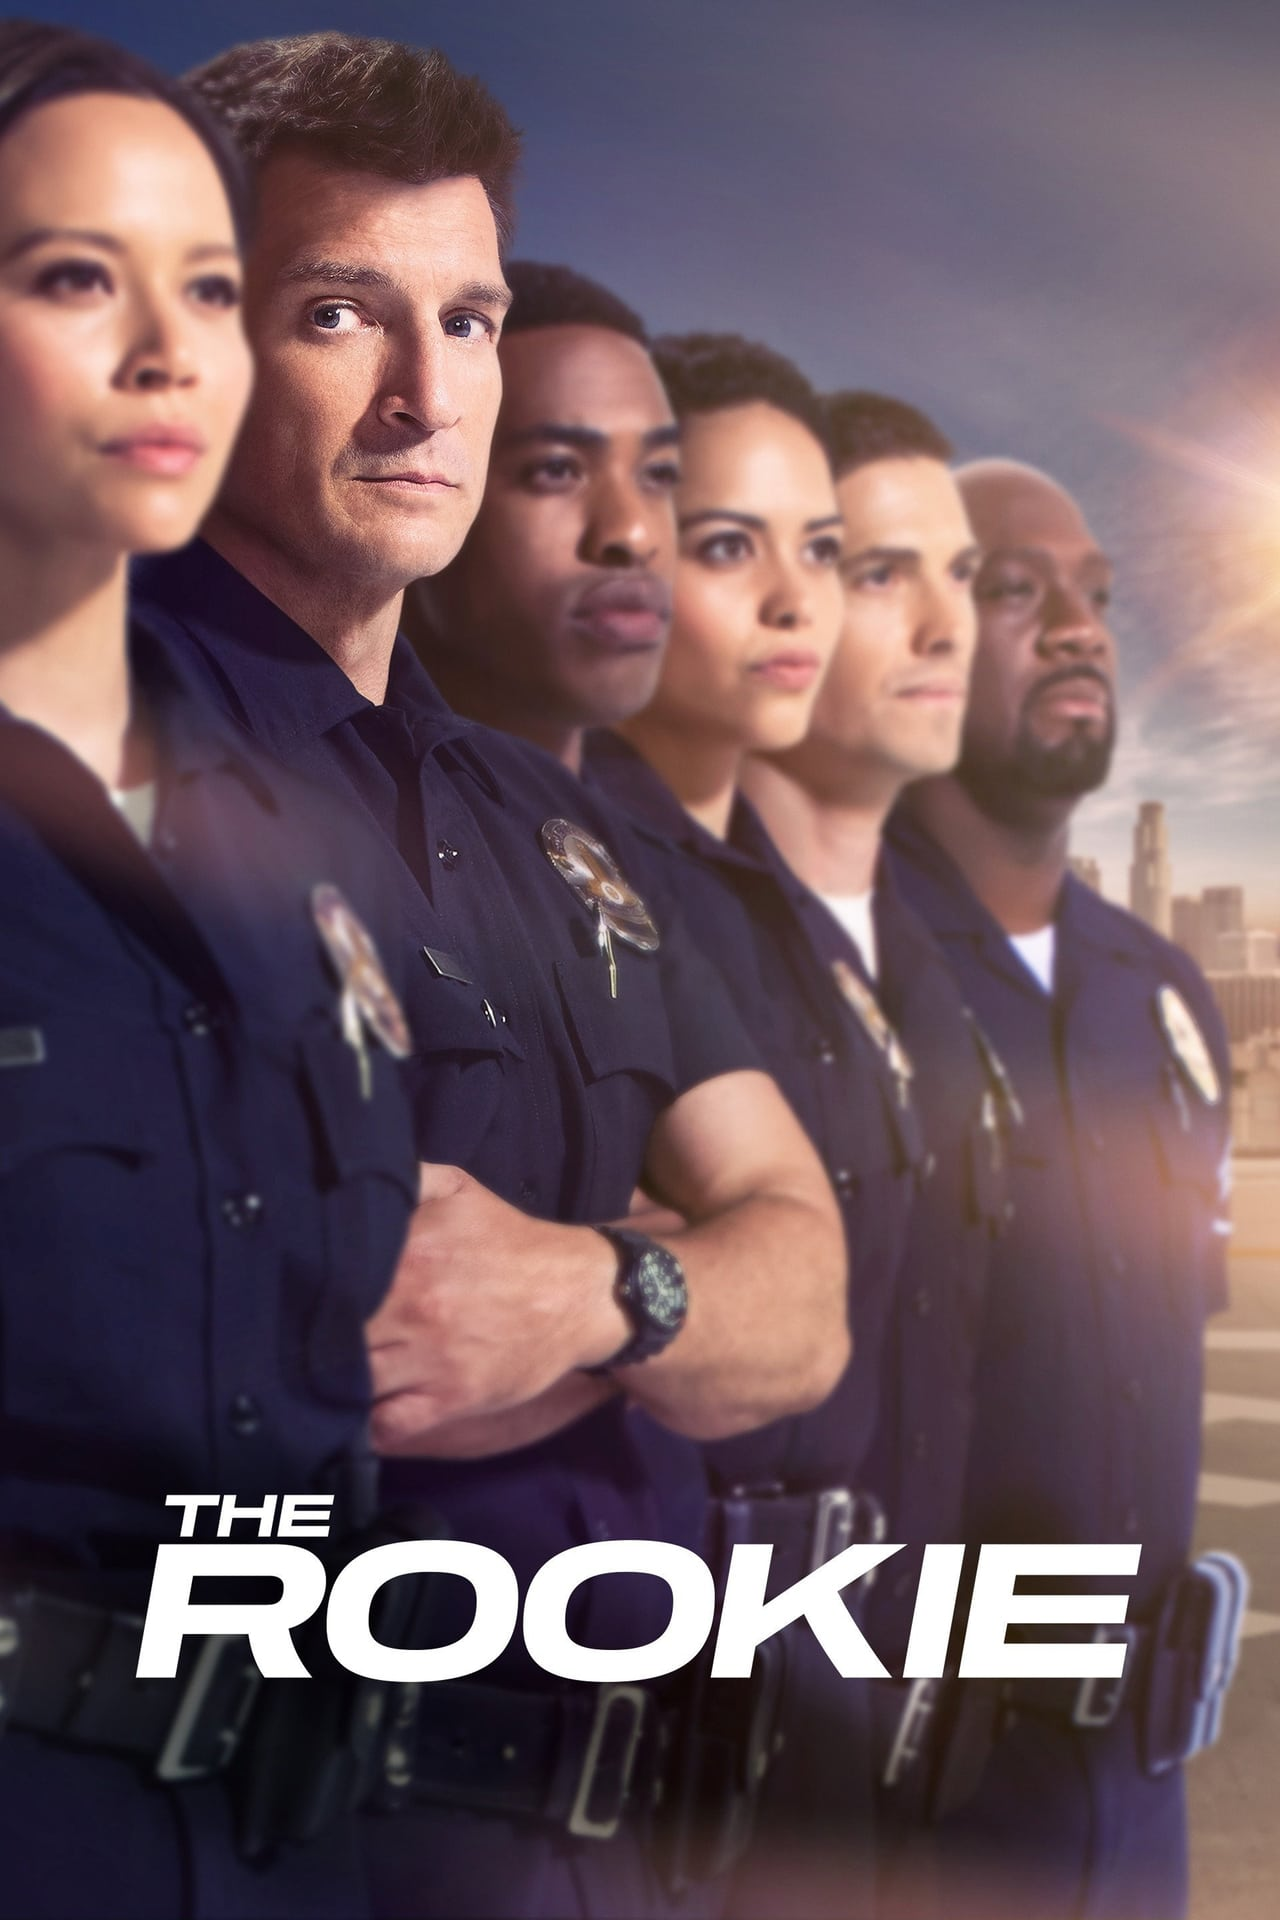 The Rookie (season 3)